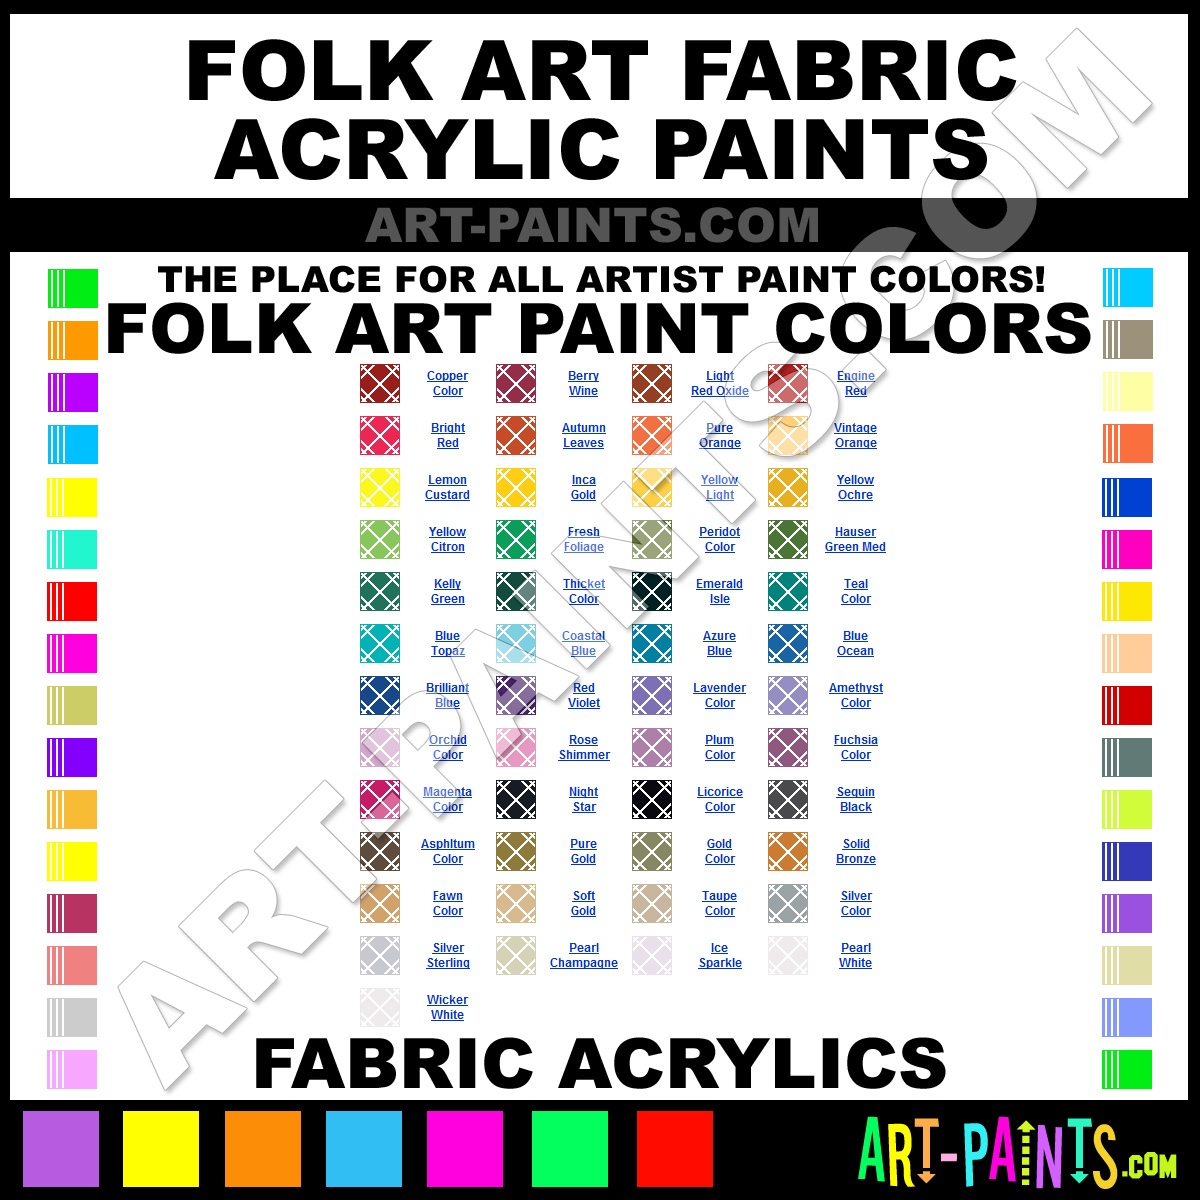 Folk art acrylic paint color chart - Folk Art Fabric Acrylics Folk Art Fabric Paints